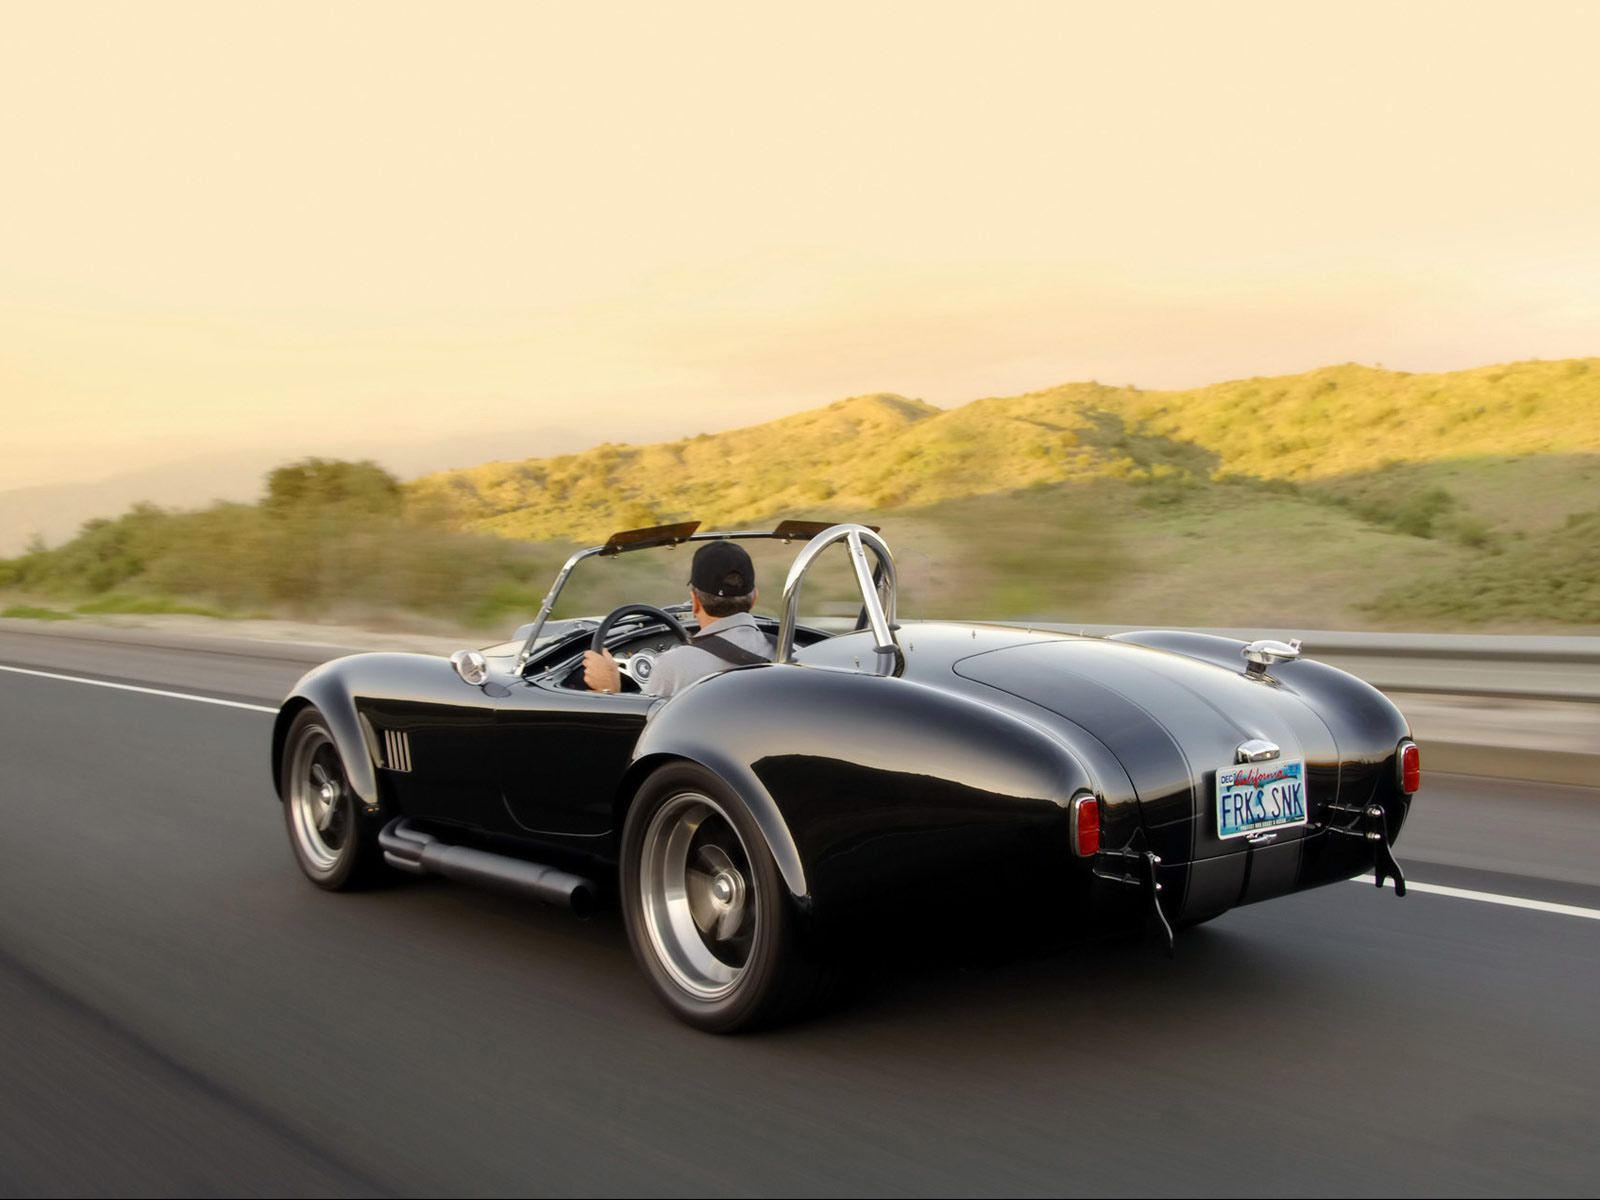 All wallpapers and pictures of shelby ac cobra superformance mkiii all models and years free for your desktop